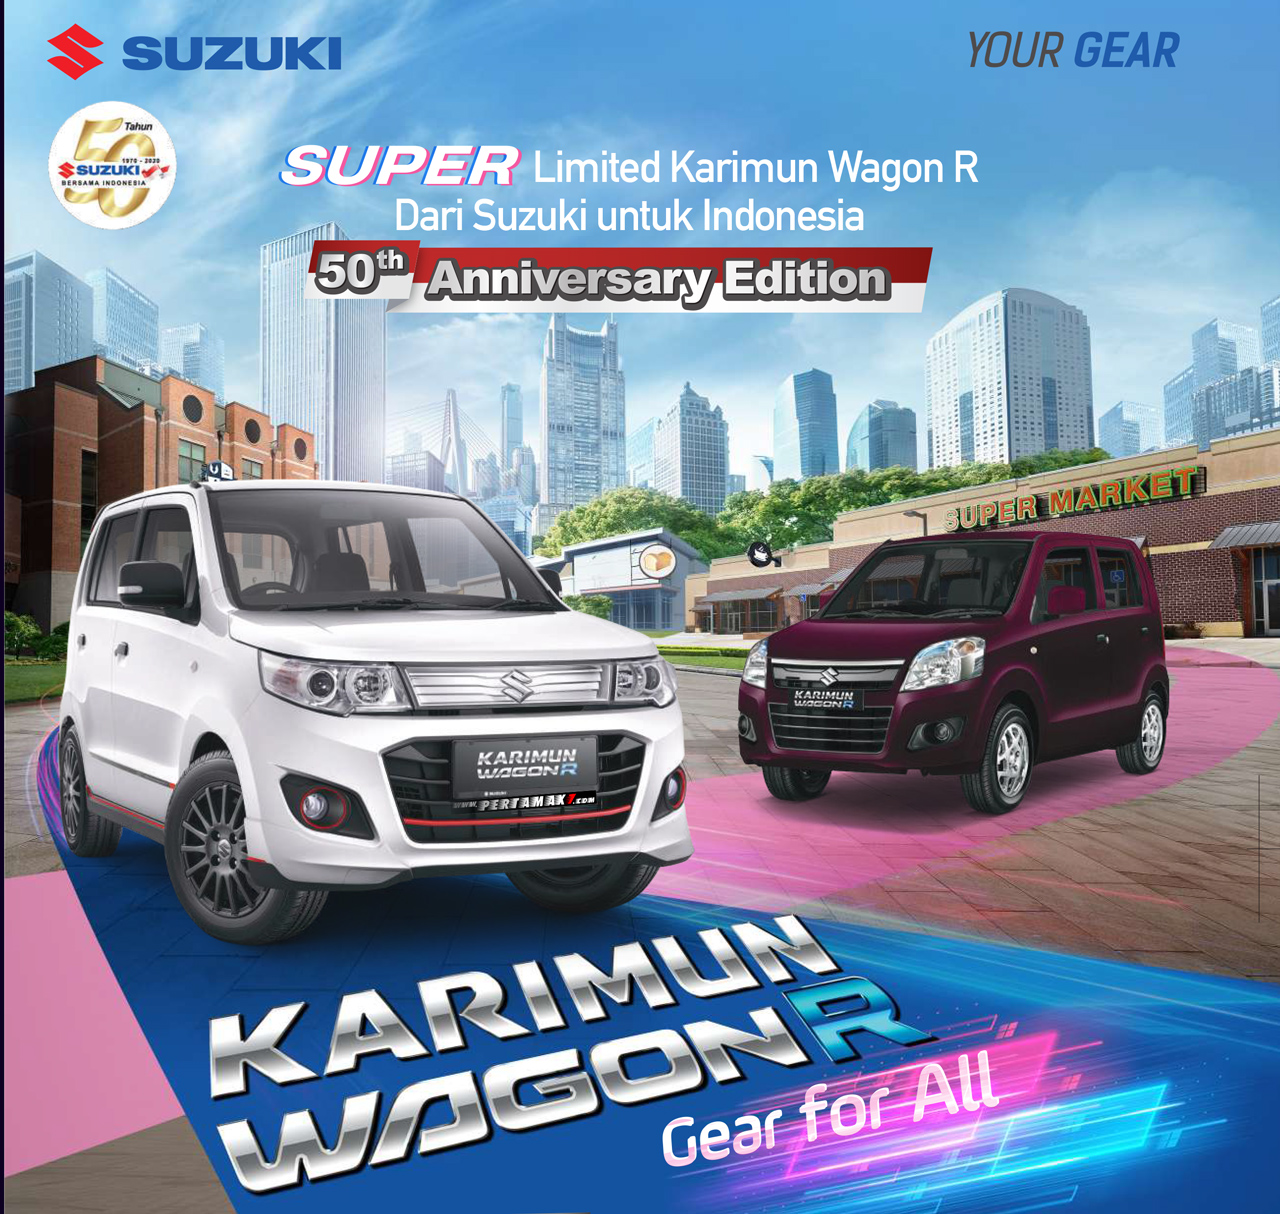 Hero Suzuki Karimun Wagon R 50th Anniversary Edition